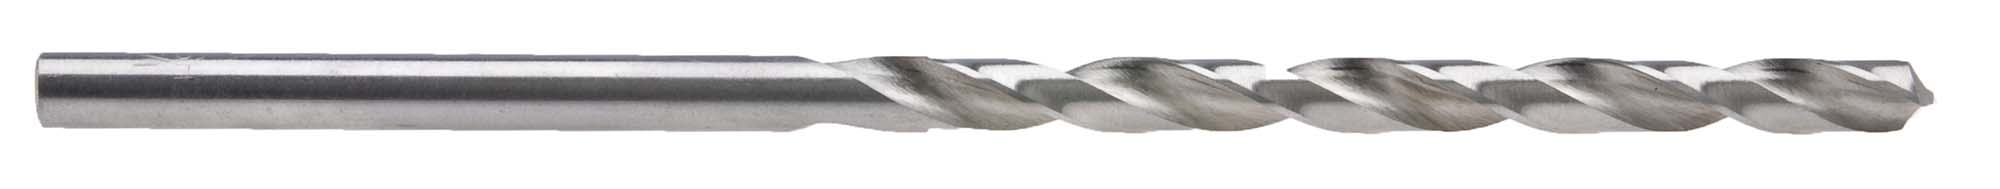 "J (.277"") ""Taper Length"" Long Straight Shank Drill Bit, High Speed Steel"